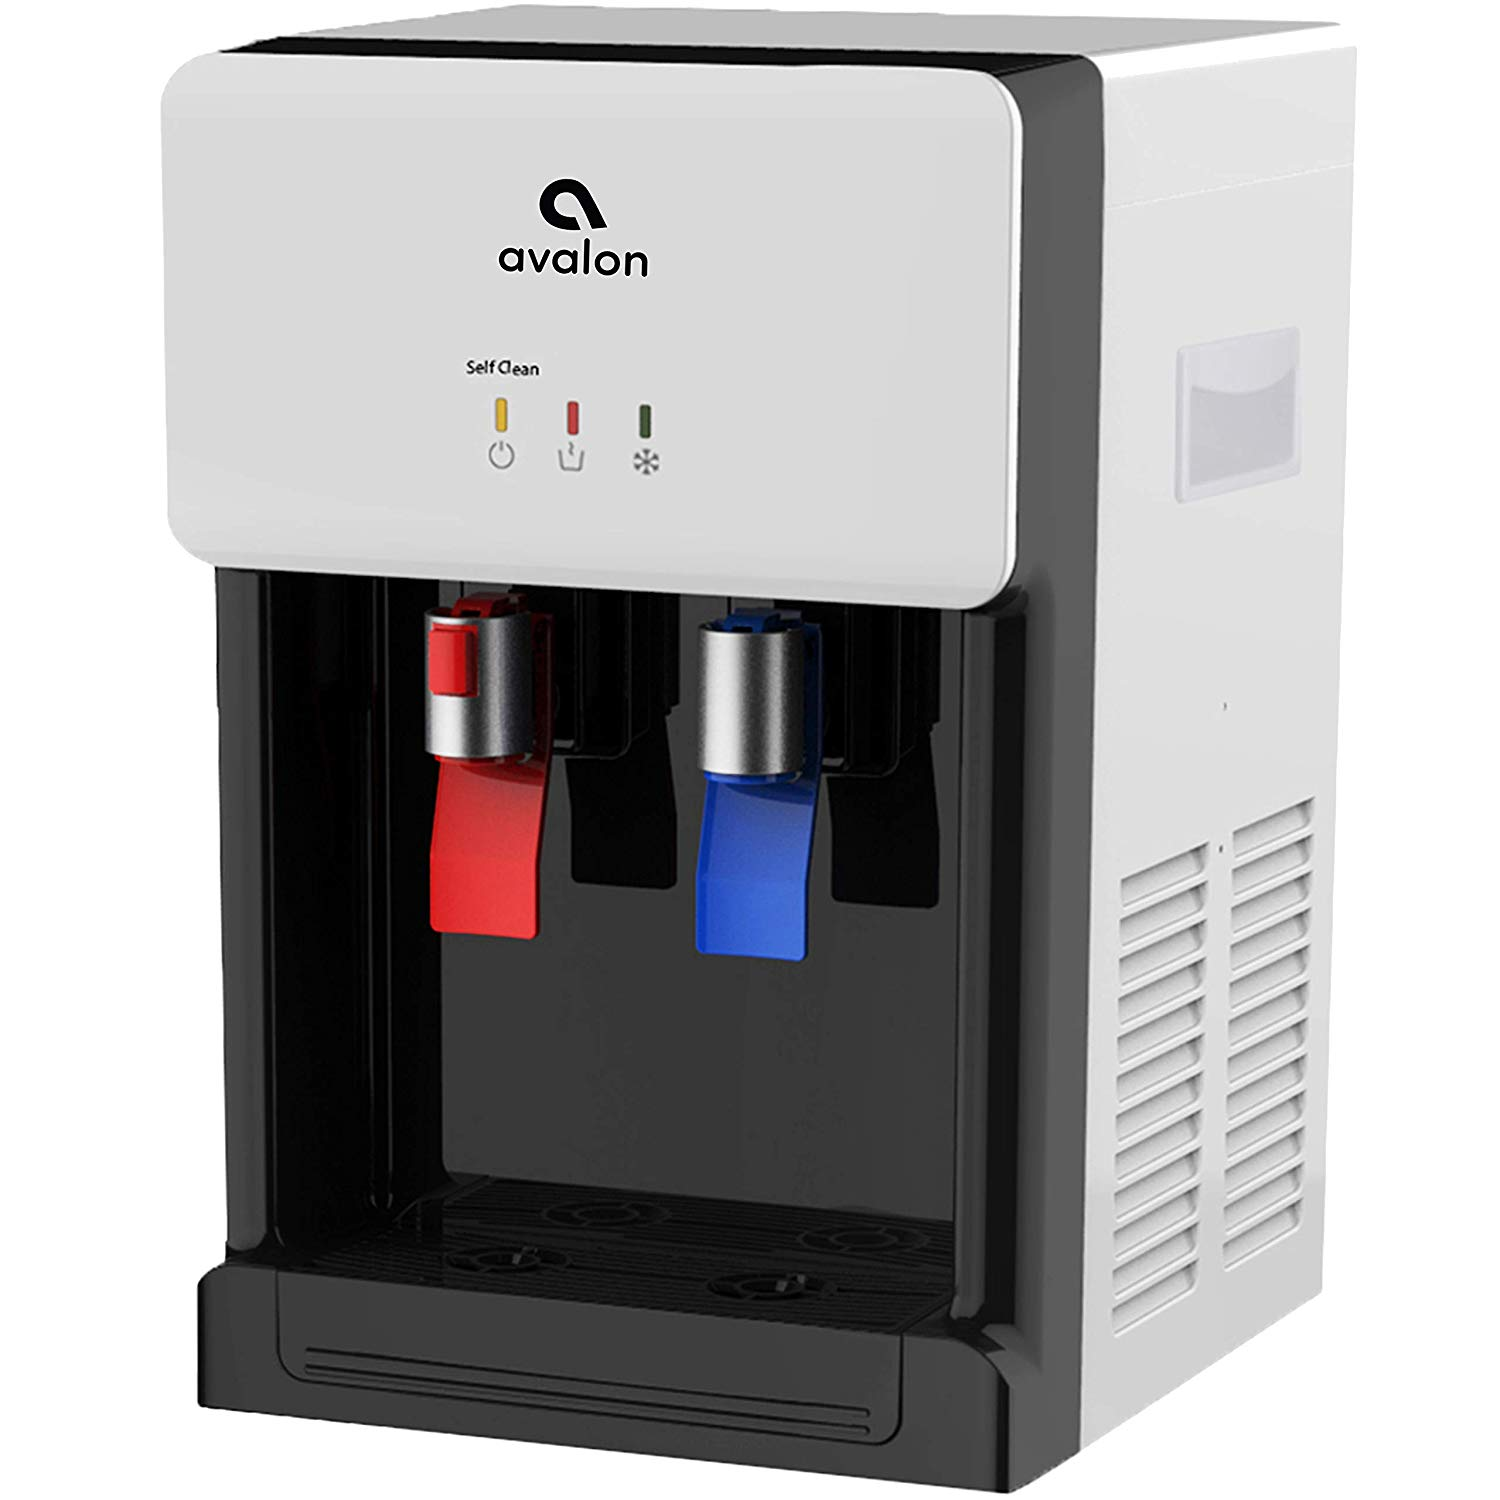 Avalon Countertop Self Cleaning Bottle-less Water Dispenser